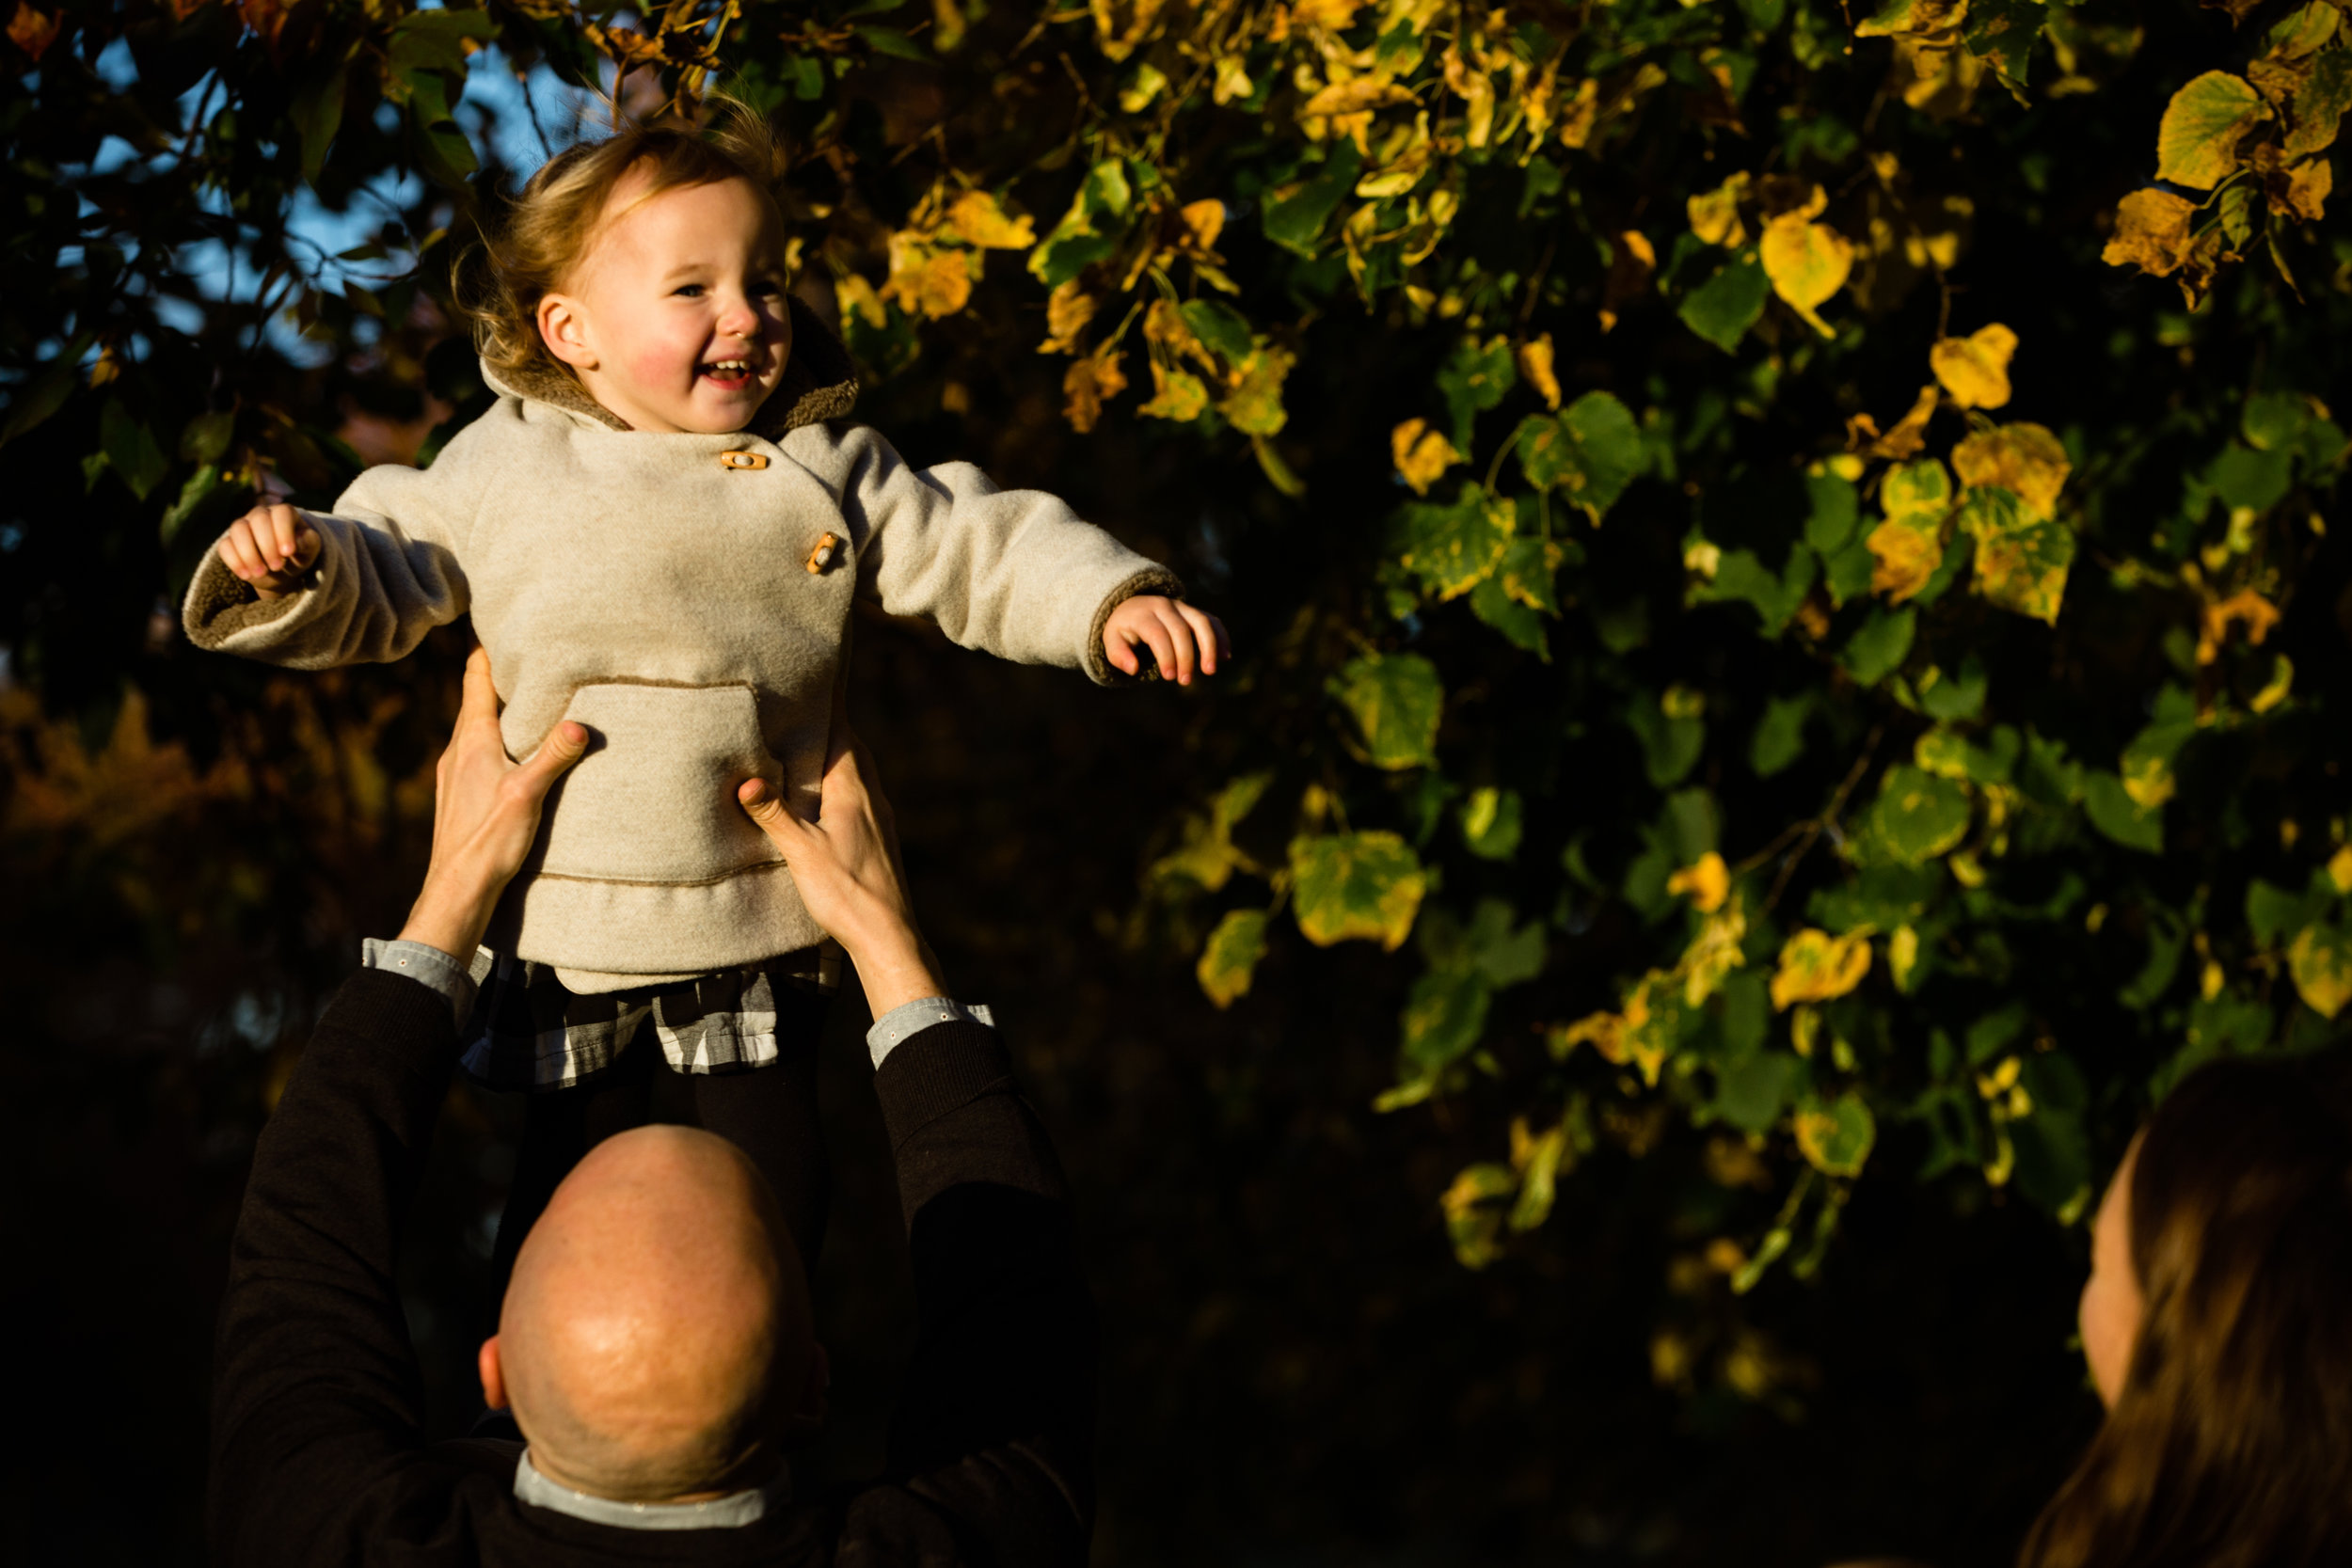 father holds sun lit daughter up in the air in photograph